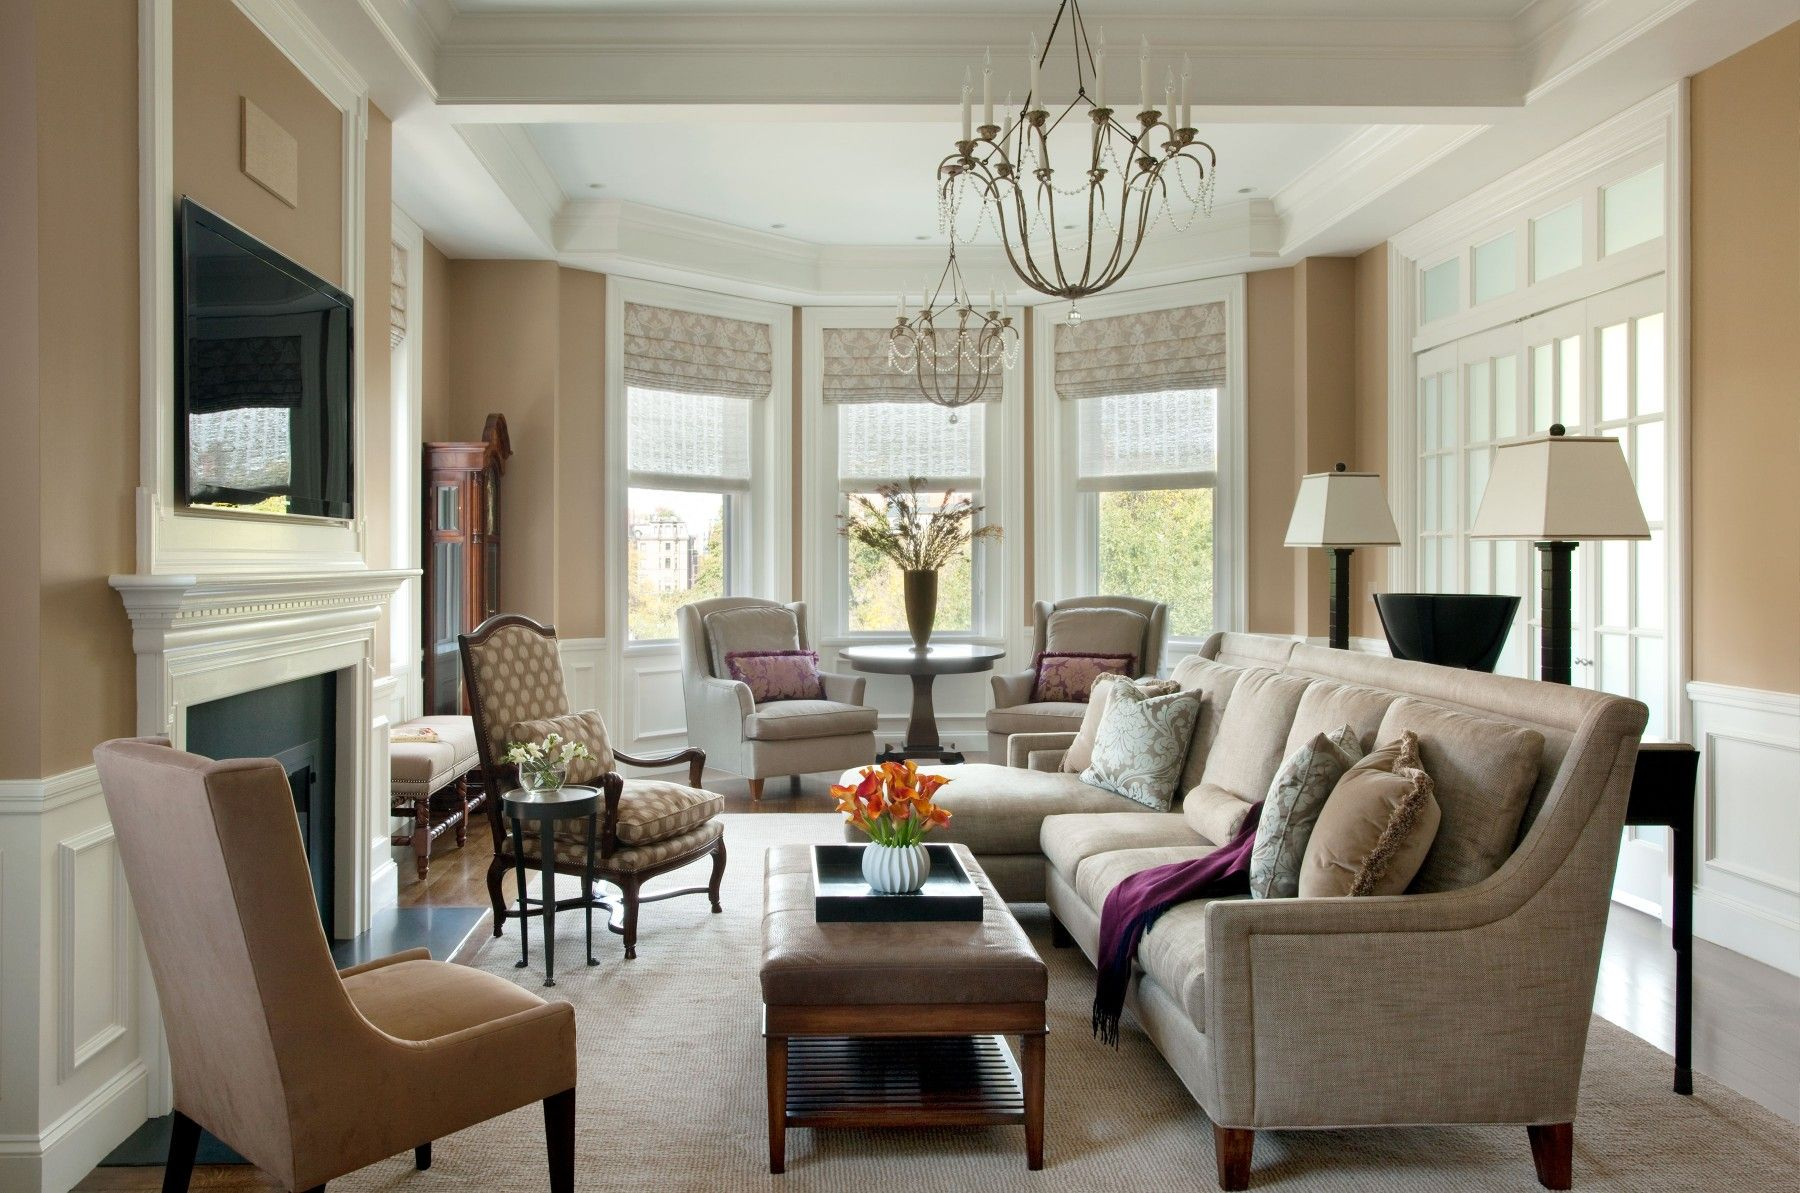 Interior decorating interior design firm Boston MA North Shore